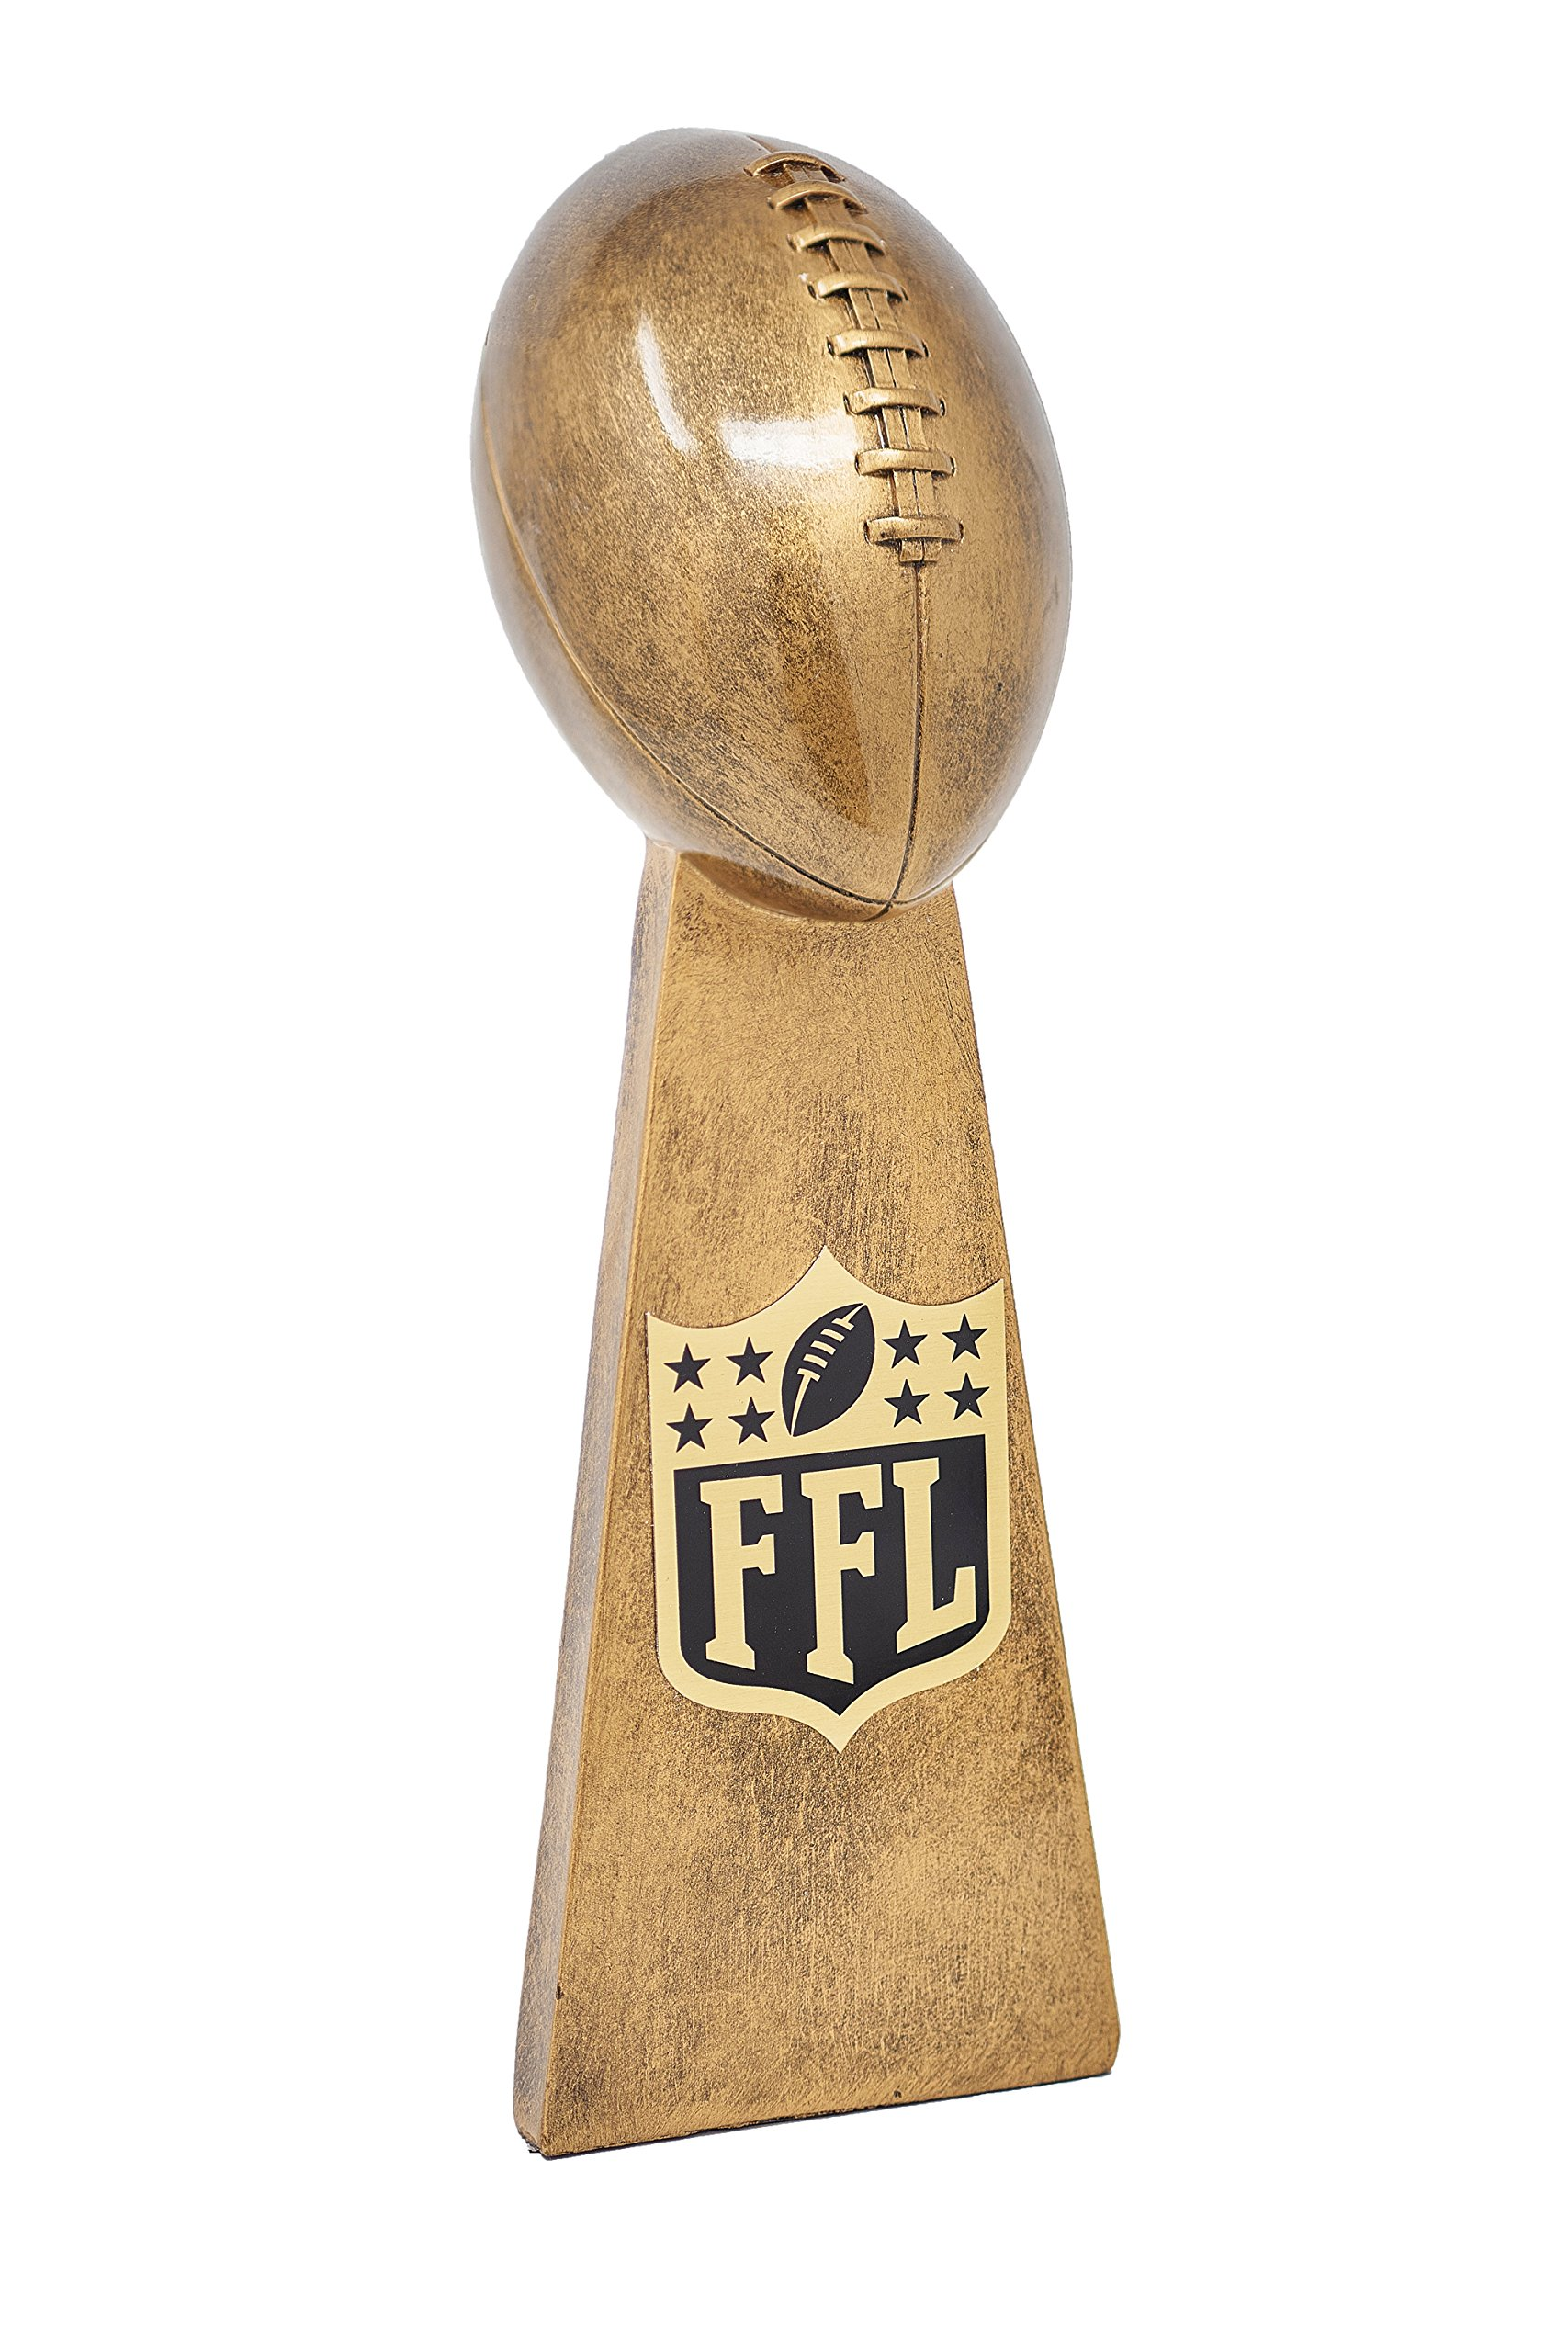 Fantasy Bros Ultimate Fantasy Football Trophy By Fantasy League Winner's Cup Lombardi Trophy Elegant & Durable Design | Gold/Silver(Gold, 14.5 Inch) by Fantasy Bros